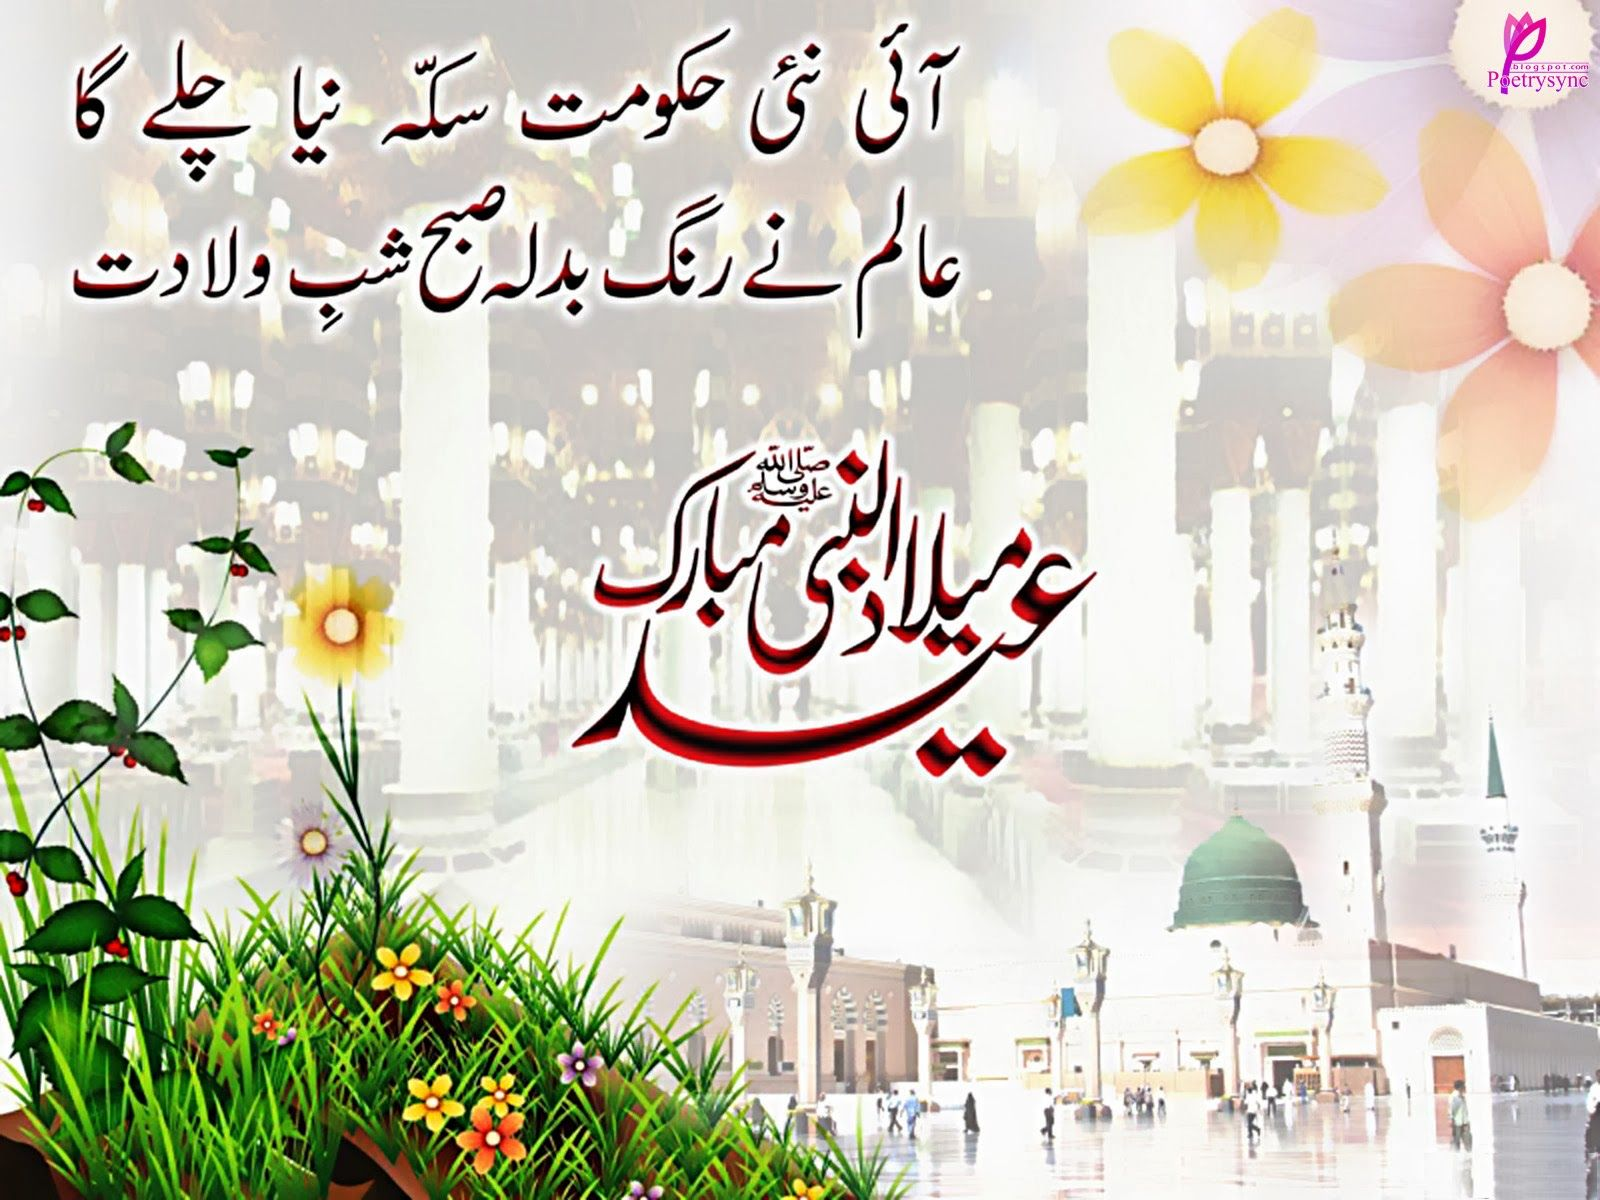 Wallpaper download eid milad un nabi - Eid Milad Un Nabi Wishes Wallpaper Pic Milad E Mustafa Pbuh